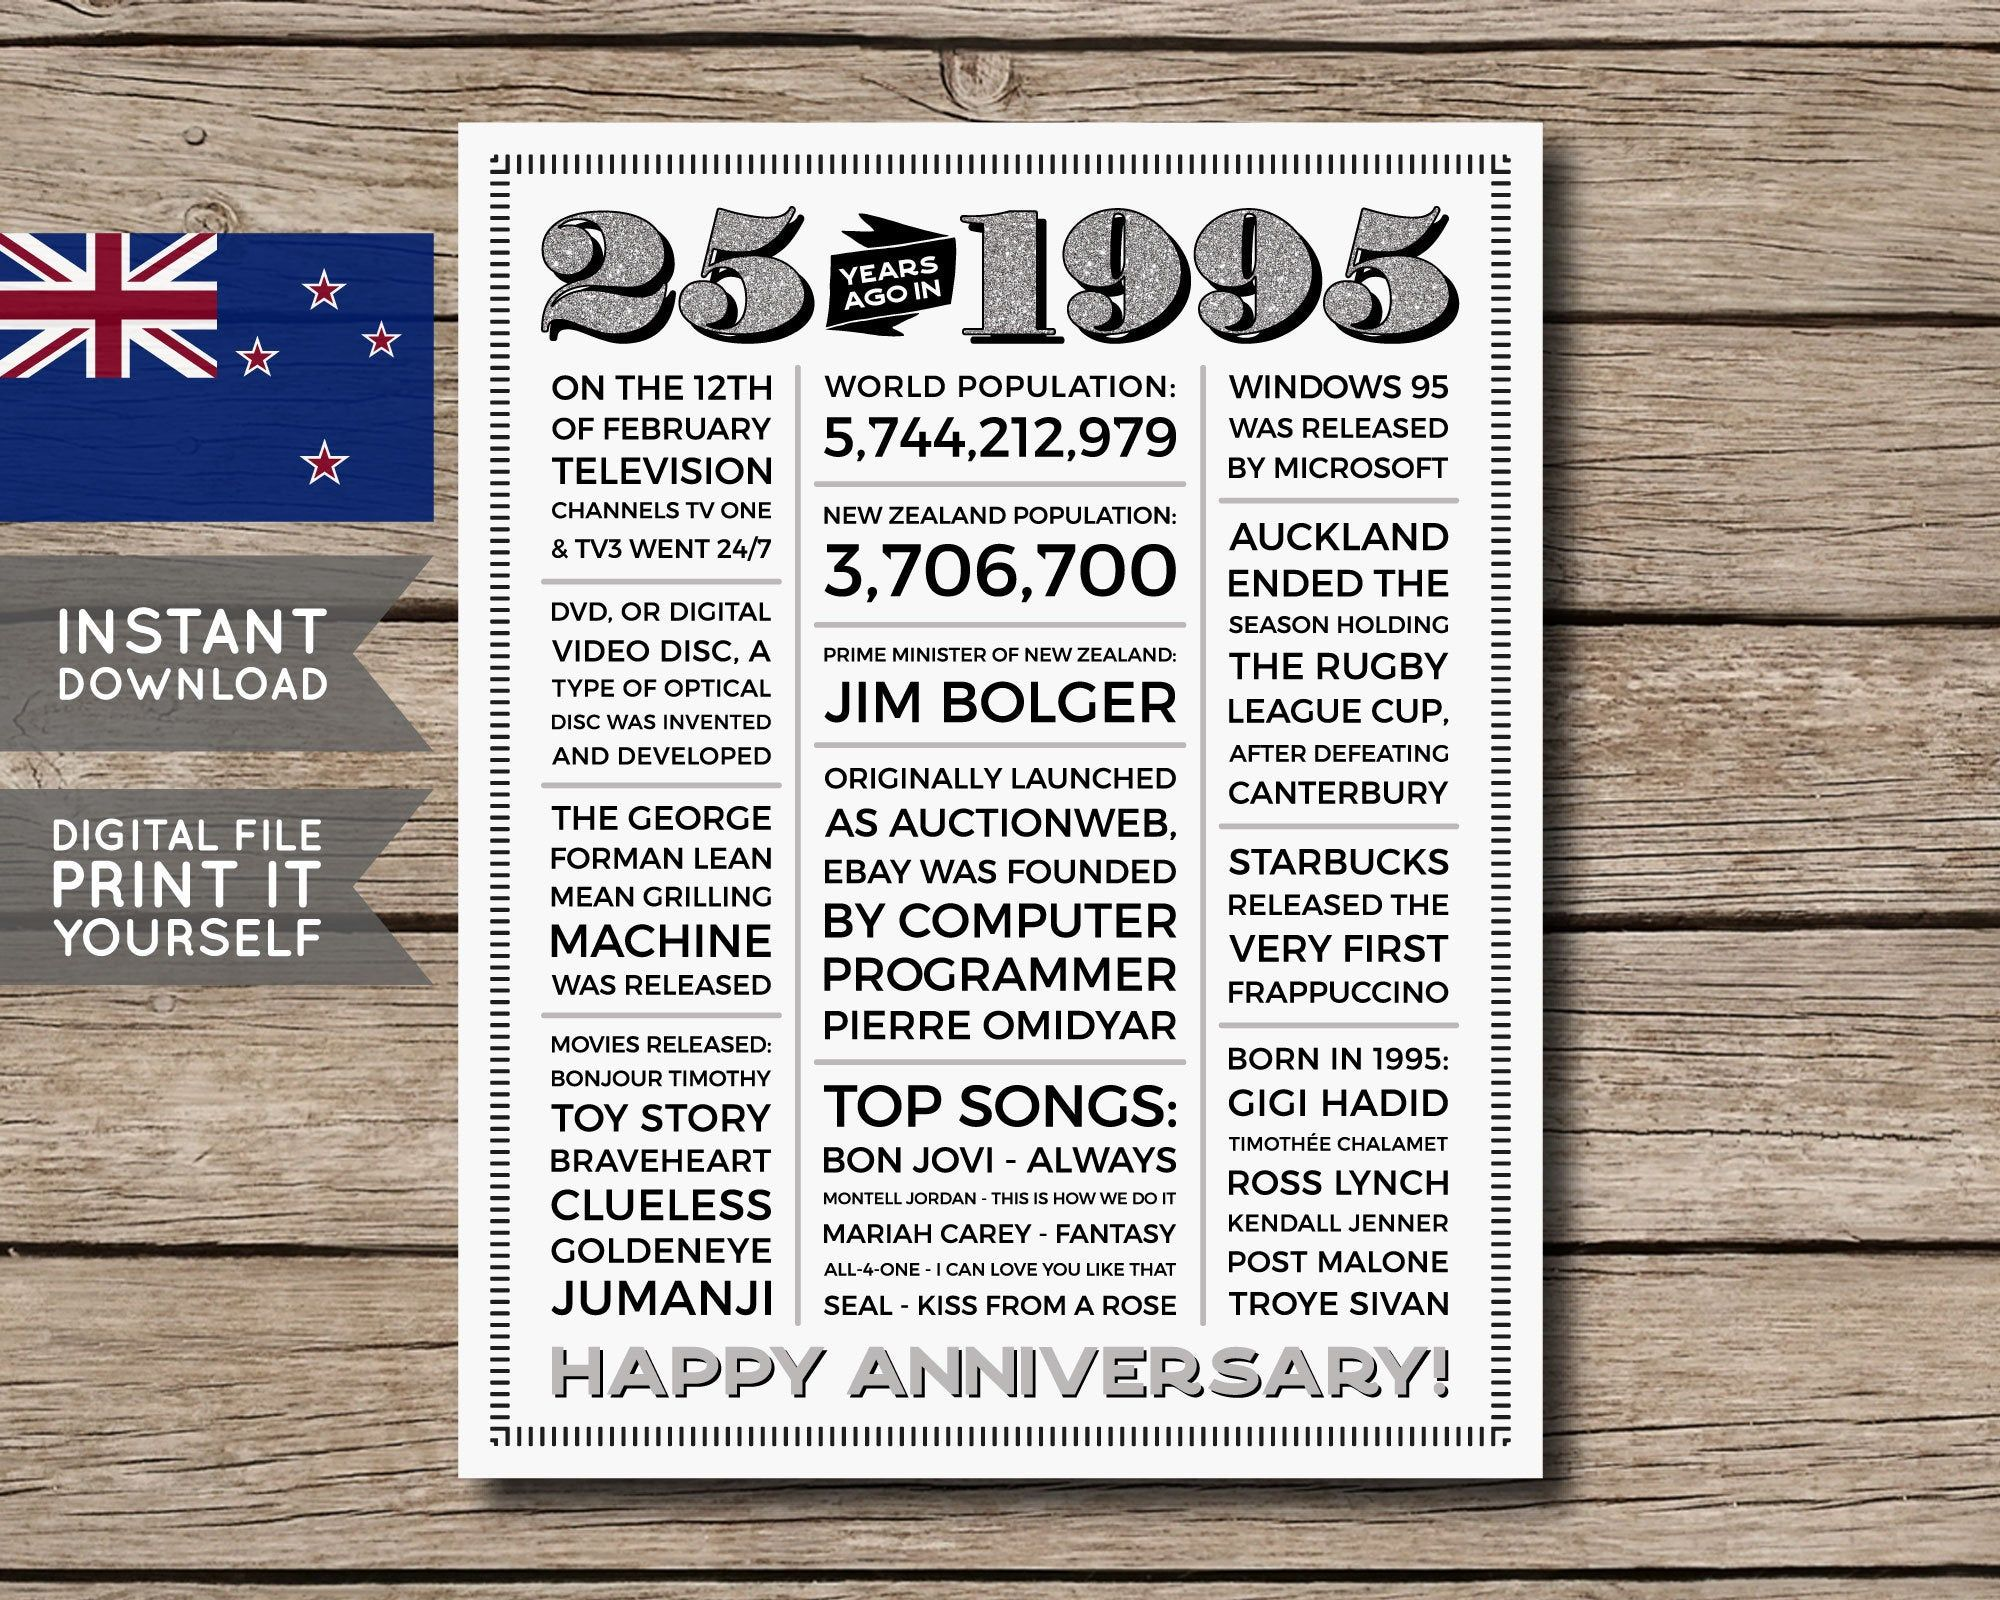 NZ 25th Anniversary Poster, 25th Anniversary Gift, 25th